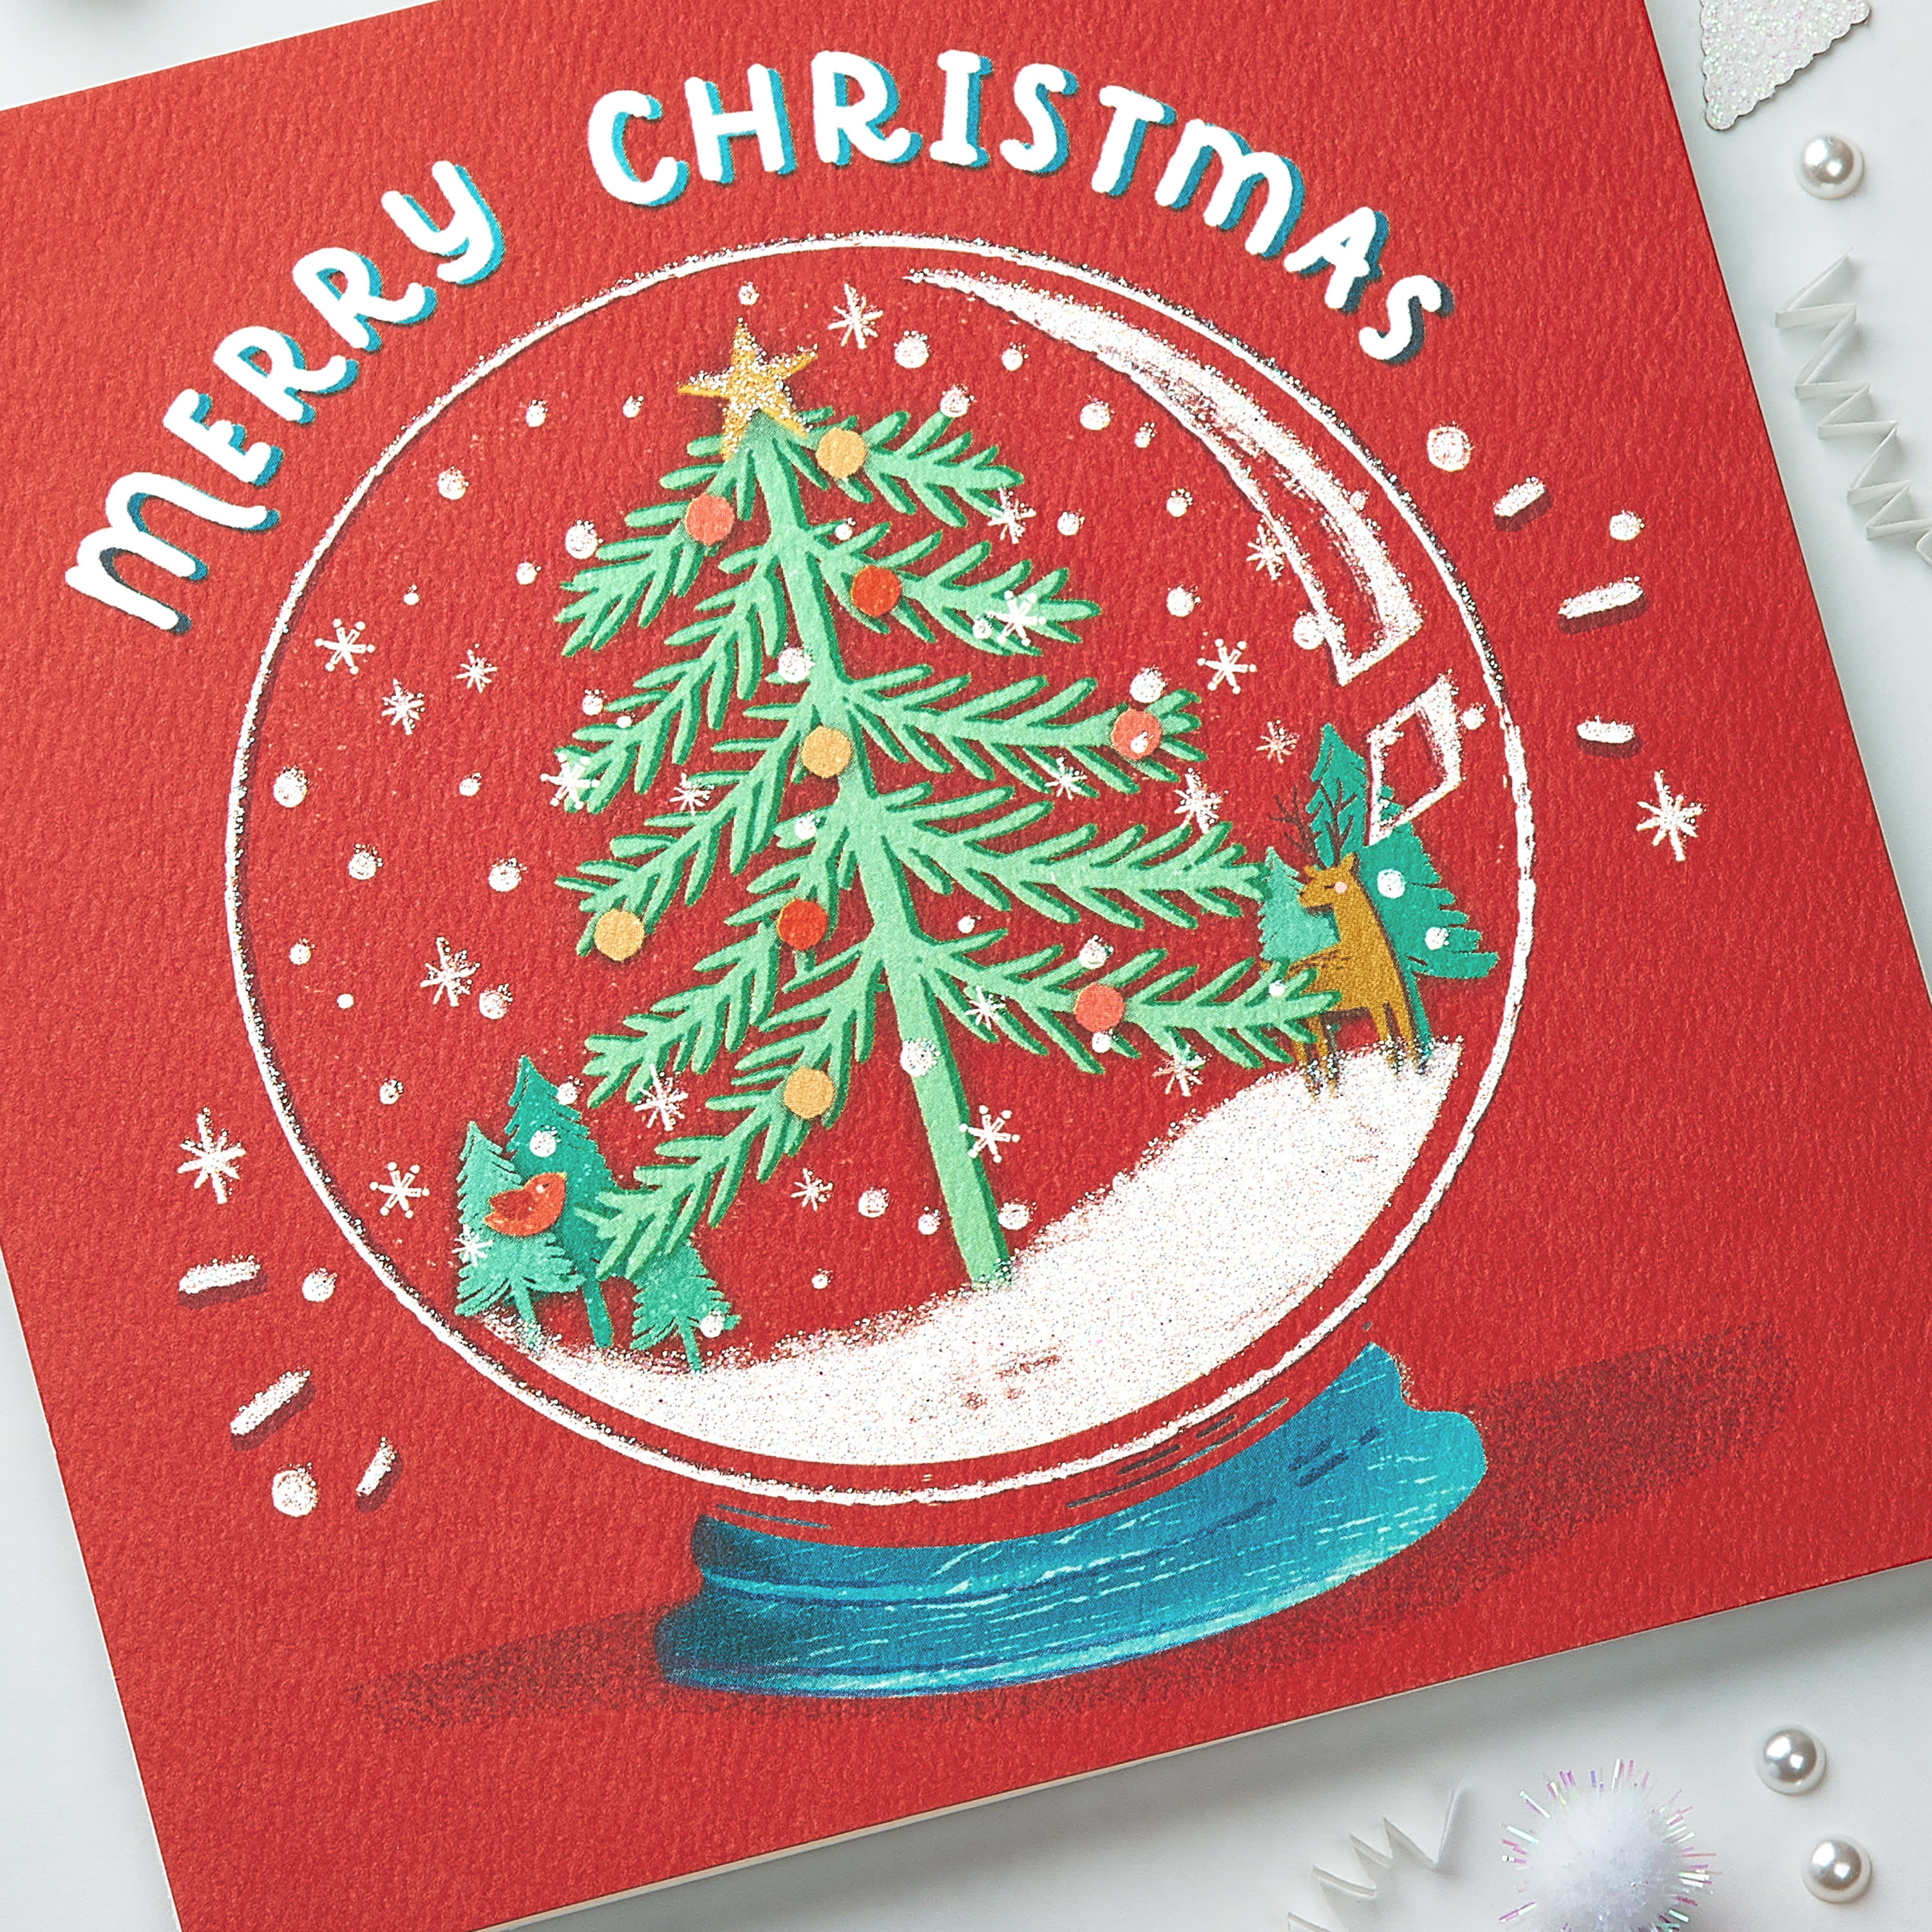 Snowglobe Christmas Greeting Card, 6-Count image